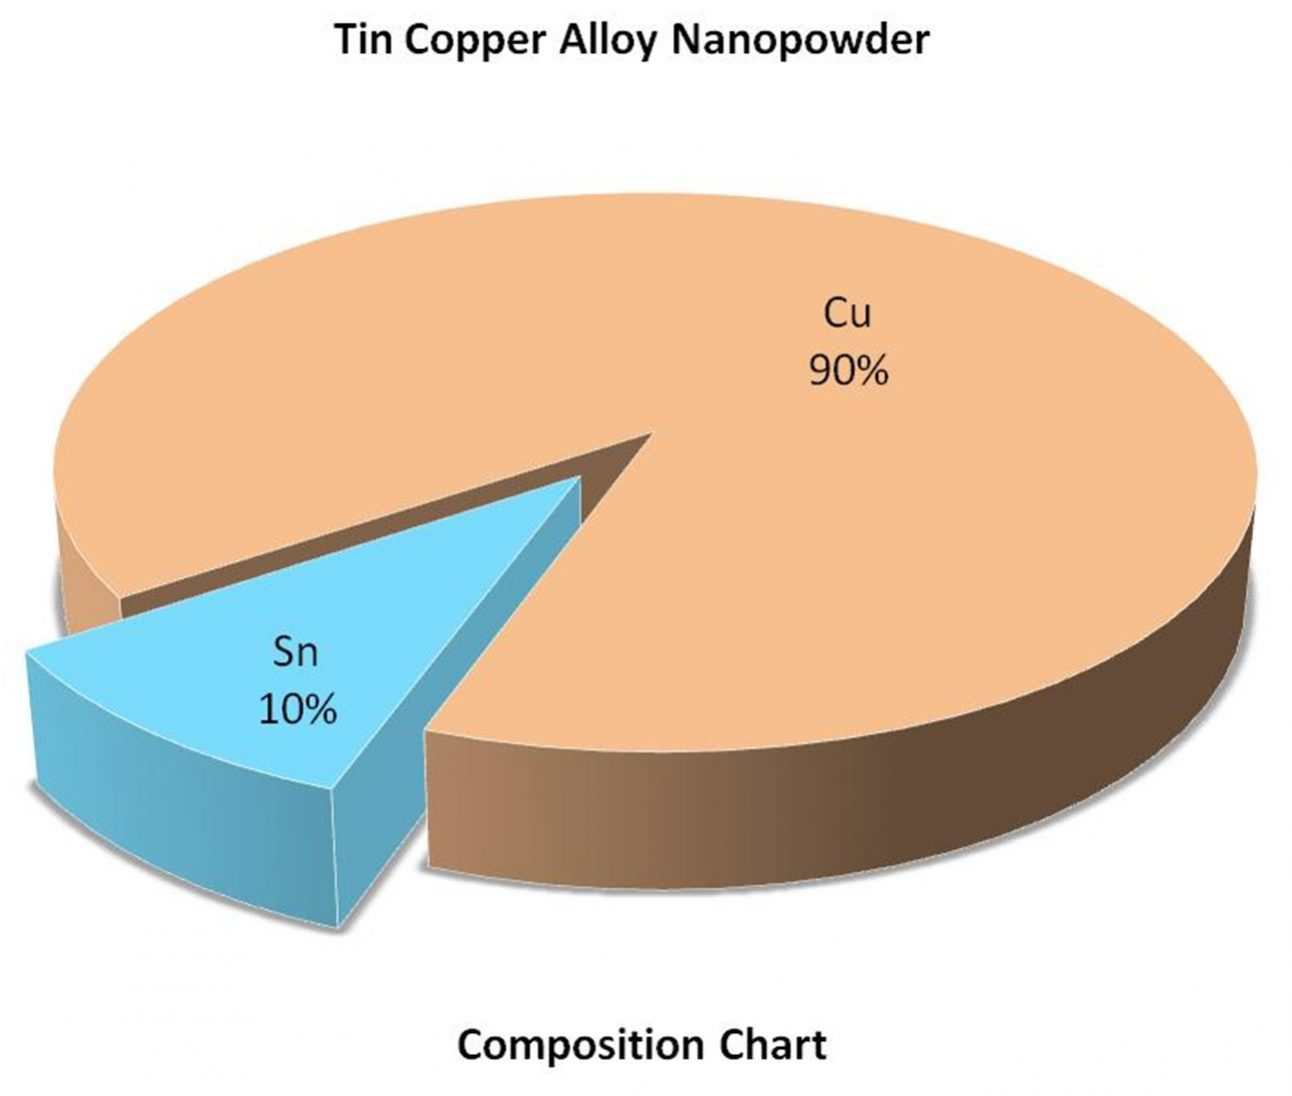 Composition Chart - Sn:Cu Nanoparticles